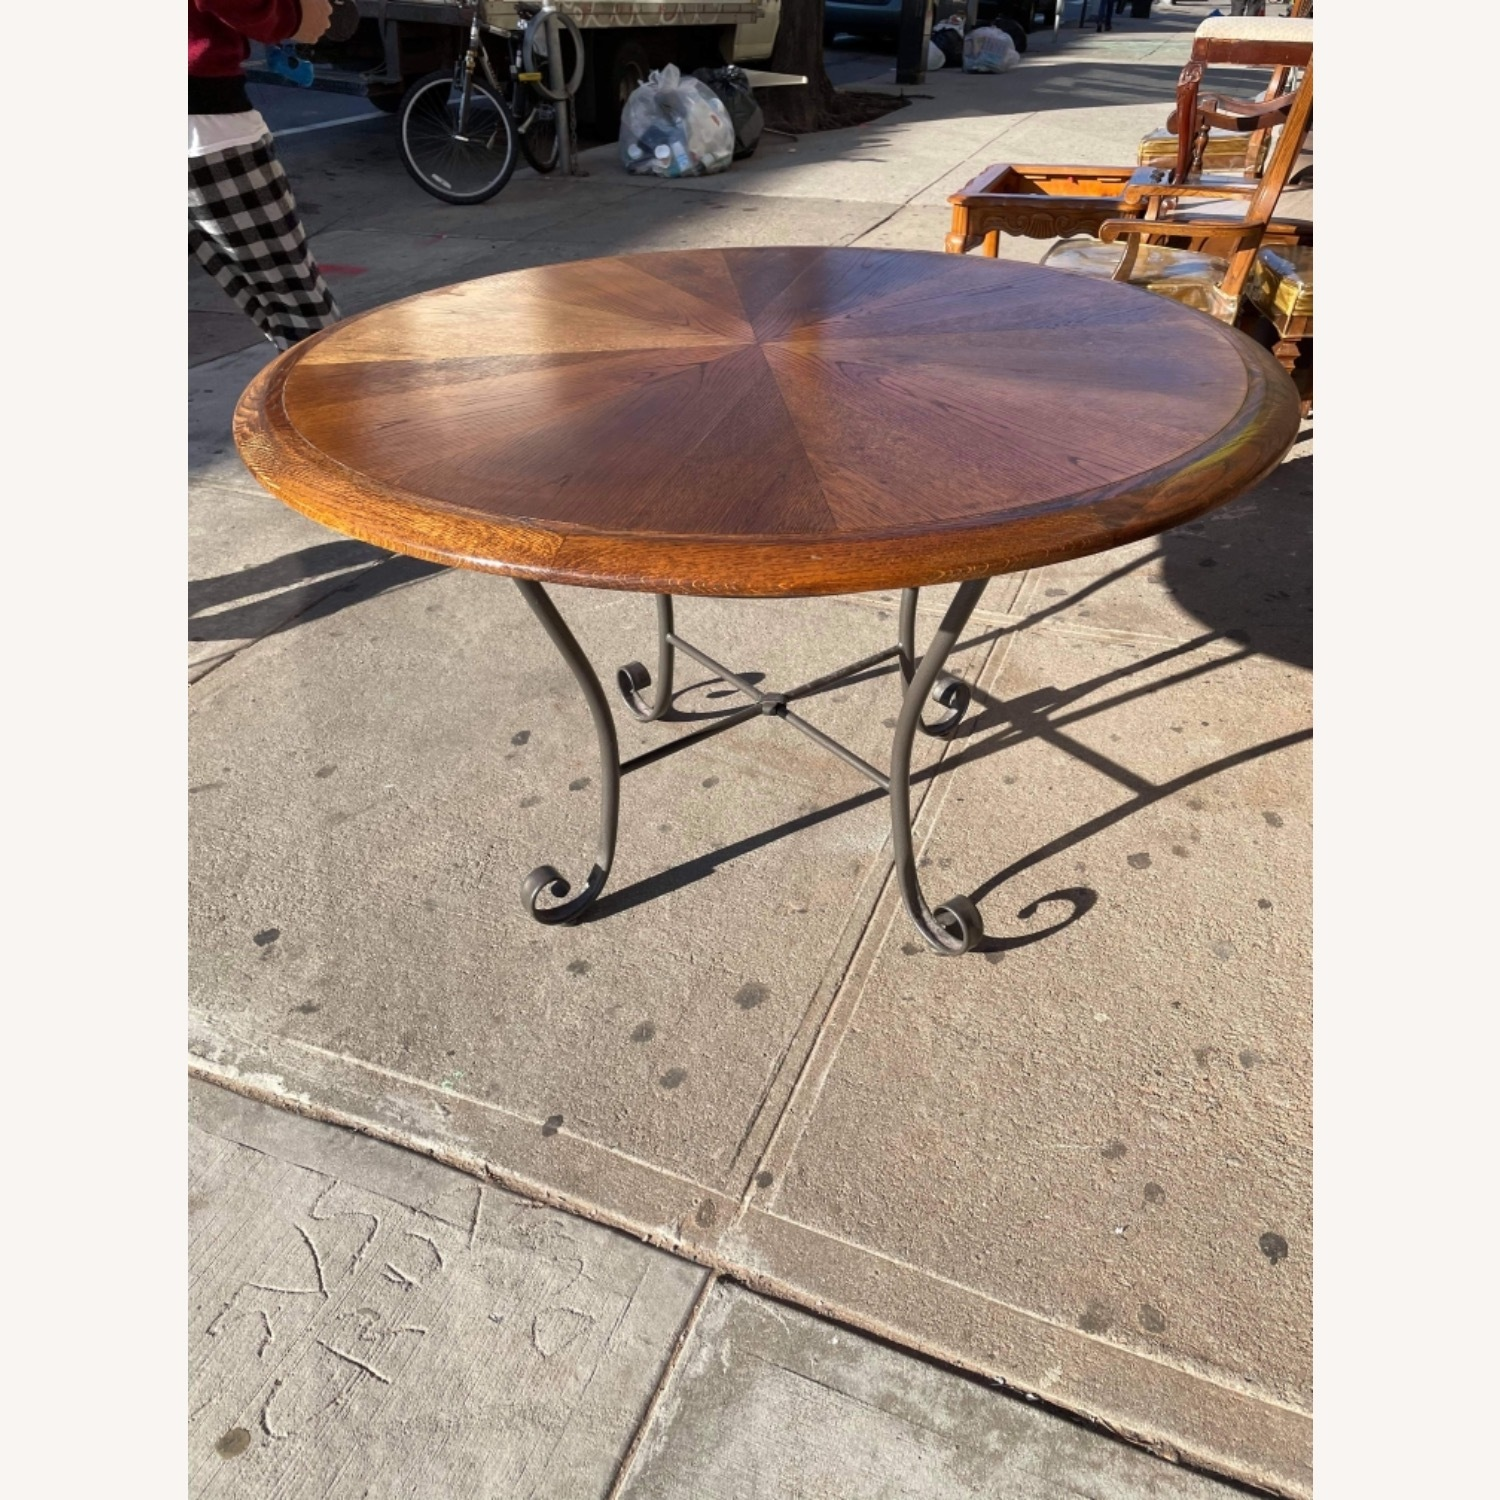 Vintage 1970s Wood & Metal Round Table - image-2